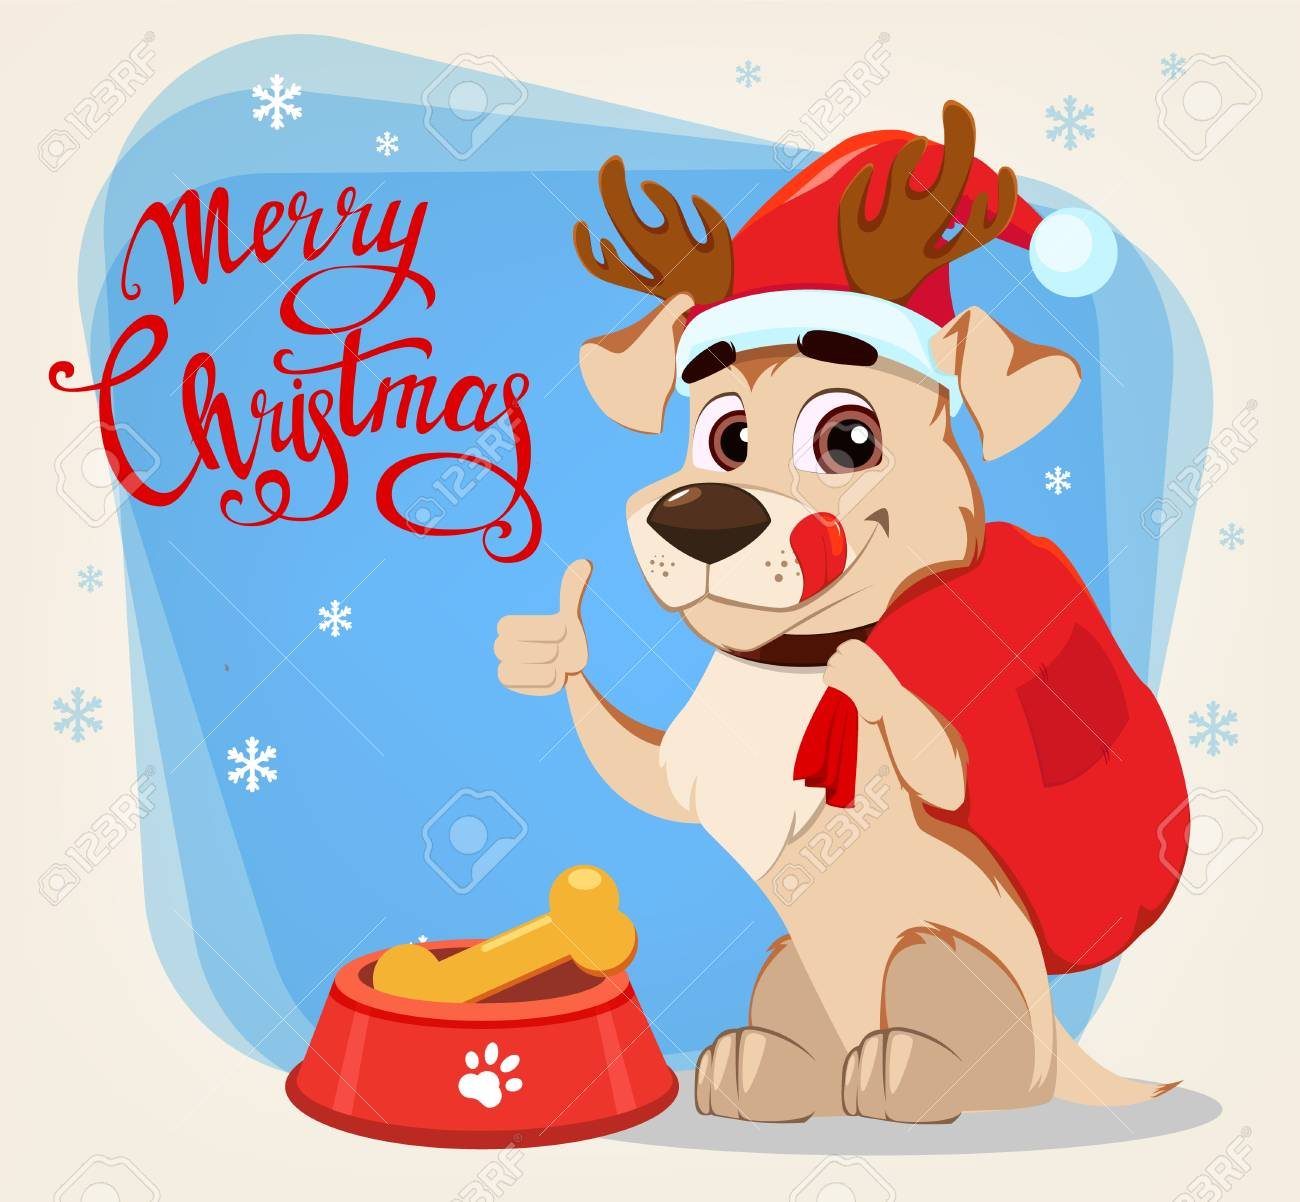 Merry christmas greeting card funny dog wearing santa claus merry christmas greeting card funny dog wearing santa claus hat and deer antlers sitting near m4hsunfo